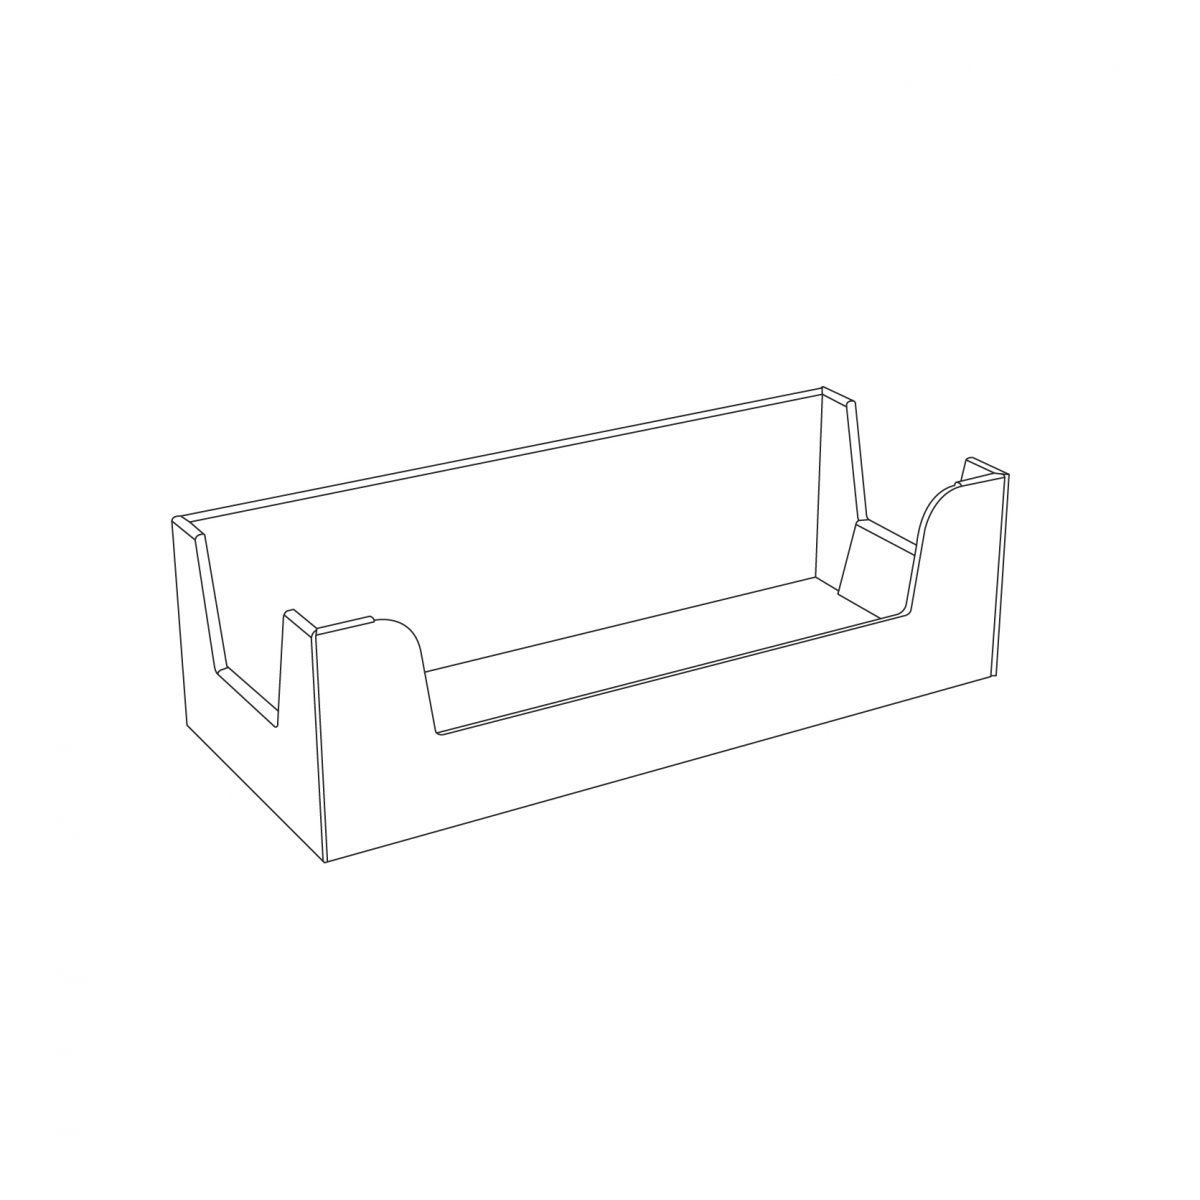 Cardboard counter display, rectangle box - outline